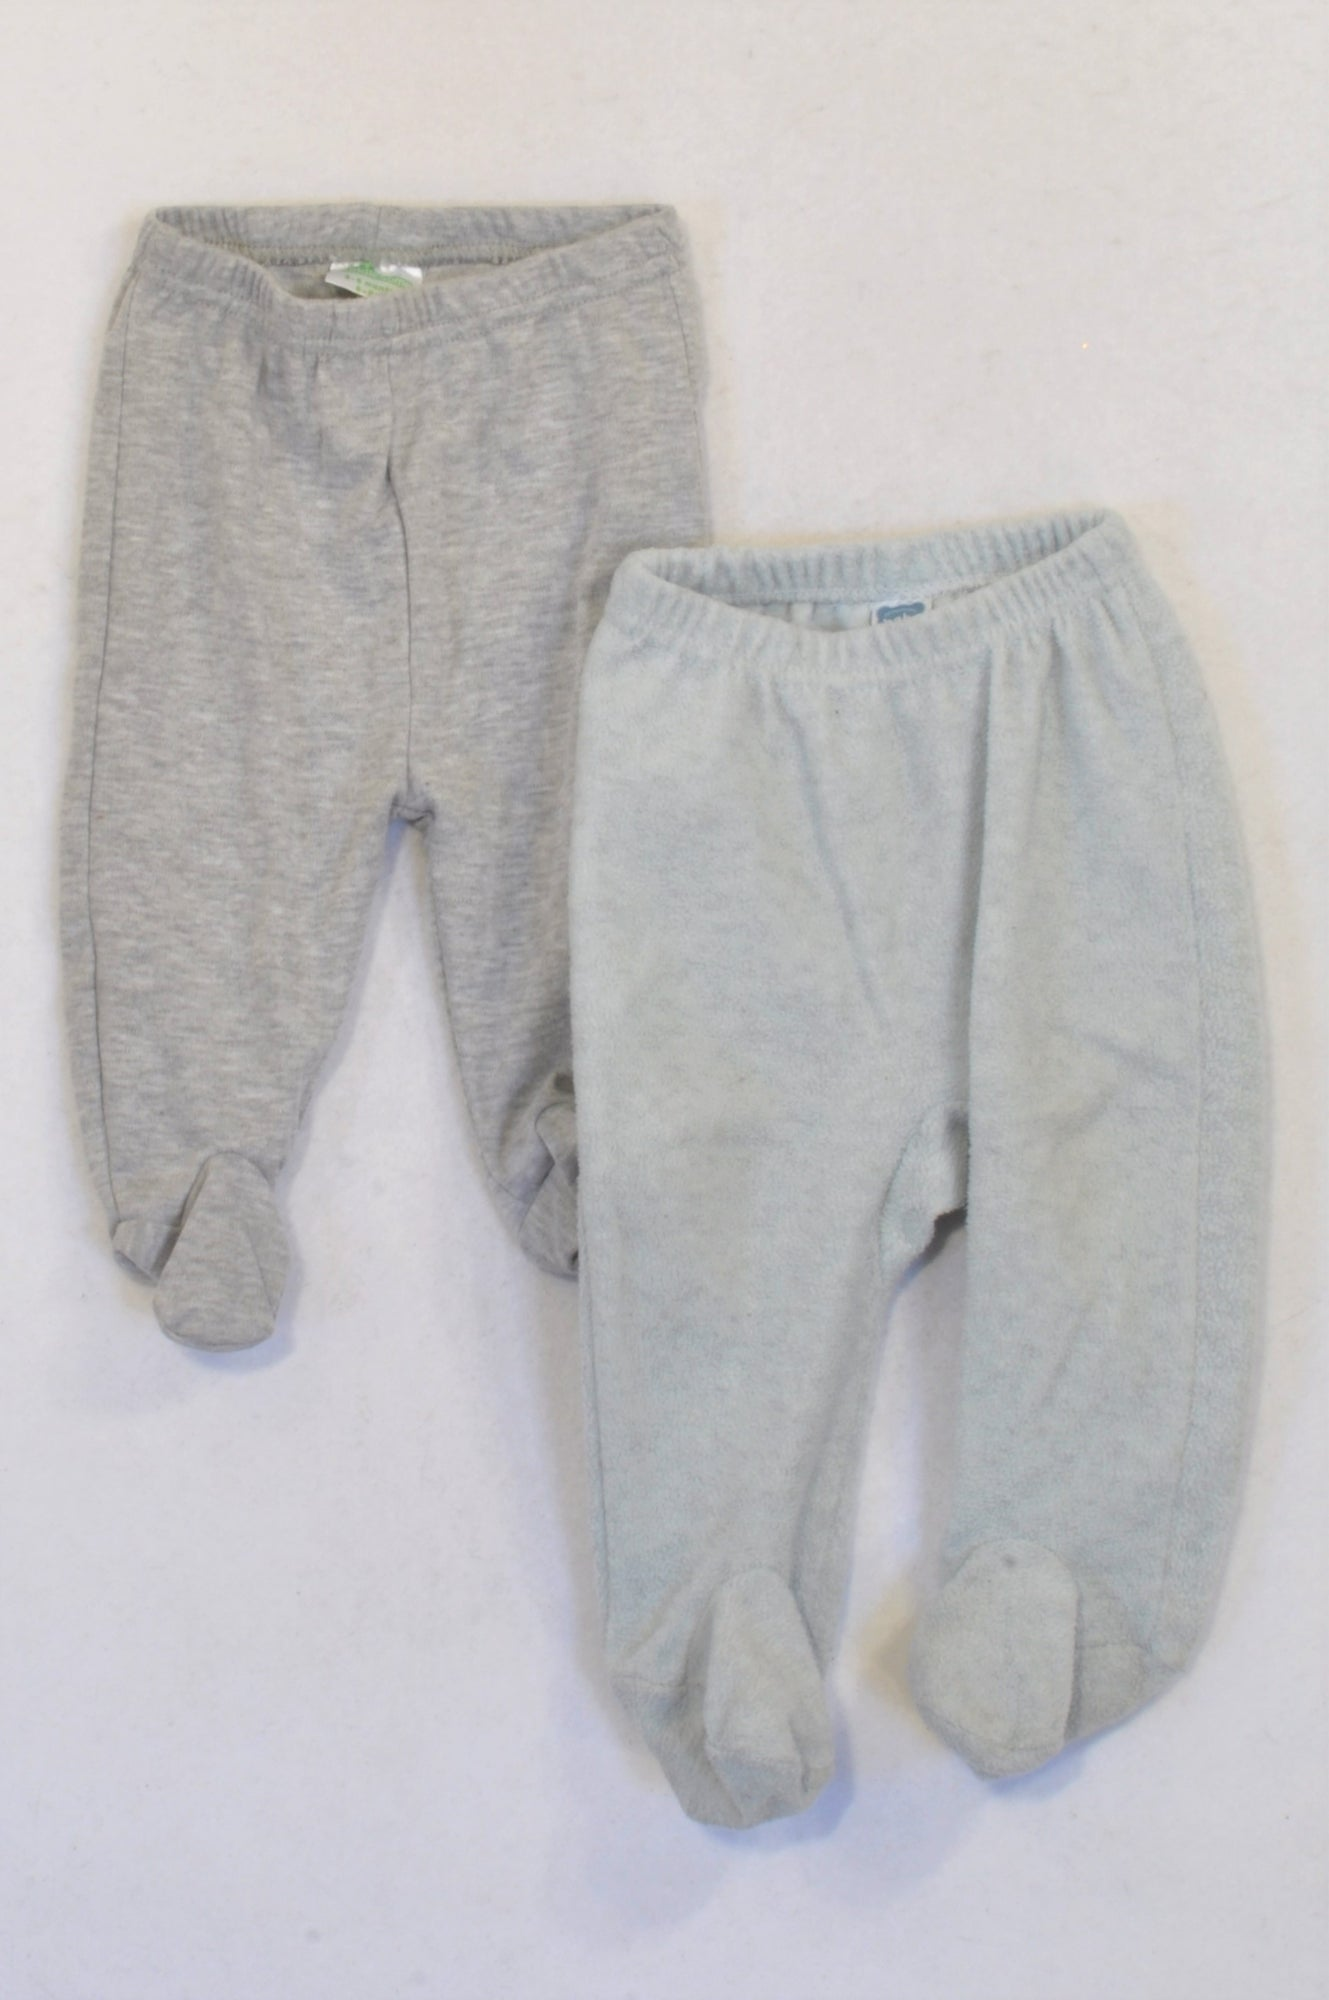 Pep 2 Pack Grey Fleece & Non Fleece Leggings Unisex 0-3 months